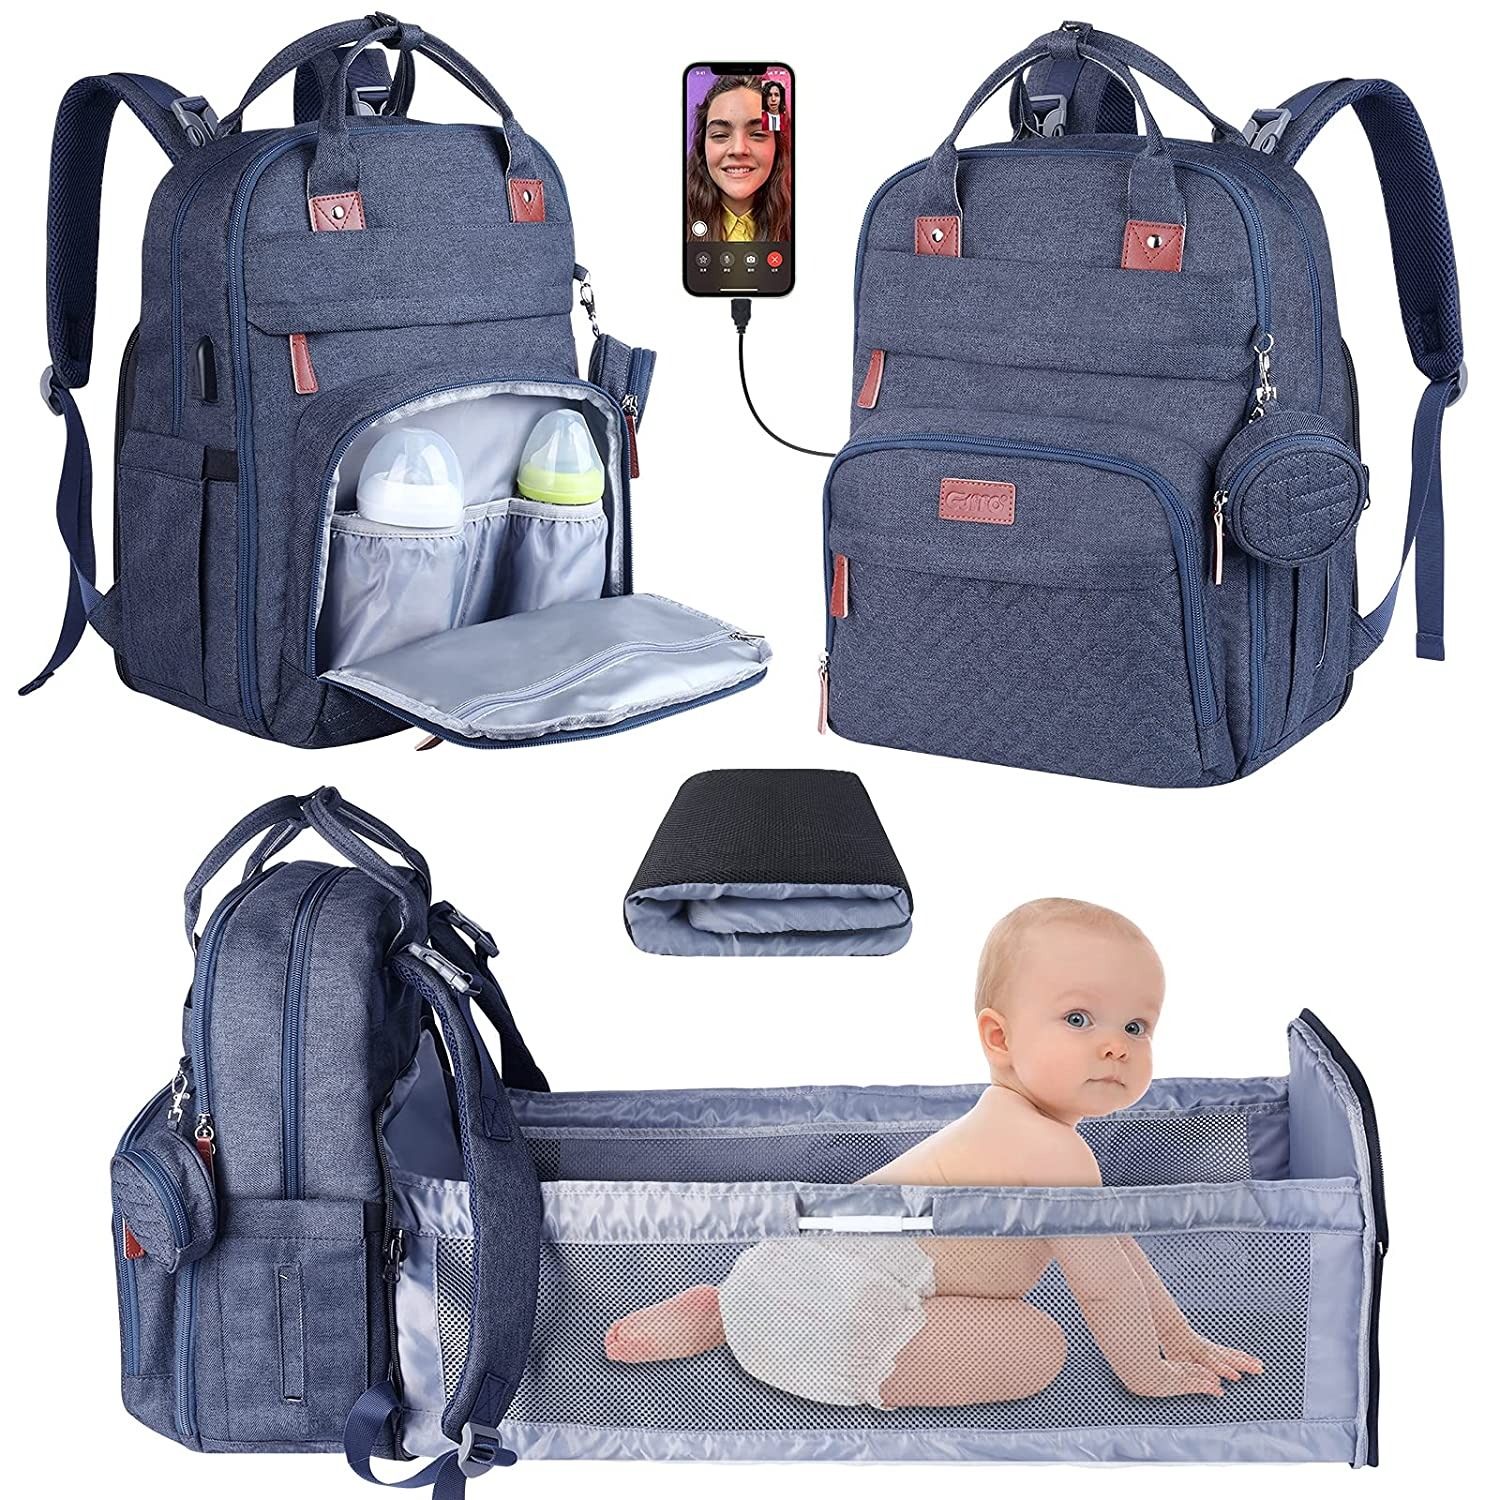 Diaper Bag Backpack,3 in 1 Baby Diaper Bag with Changing Station,Travel Foldable Baby Bag,Multi-Function Large-Capacity Baby Bags for Girls Boys Blue